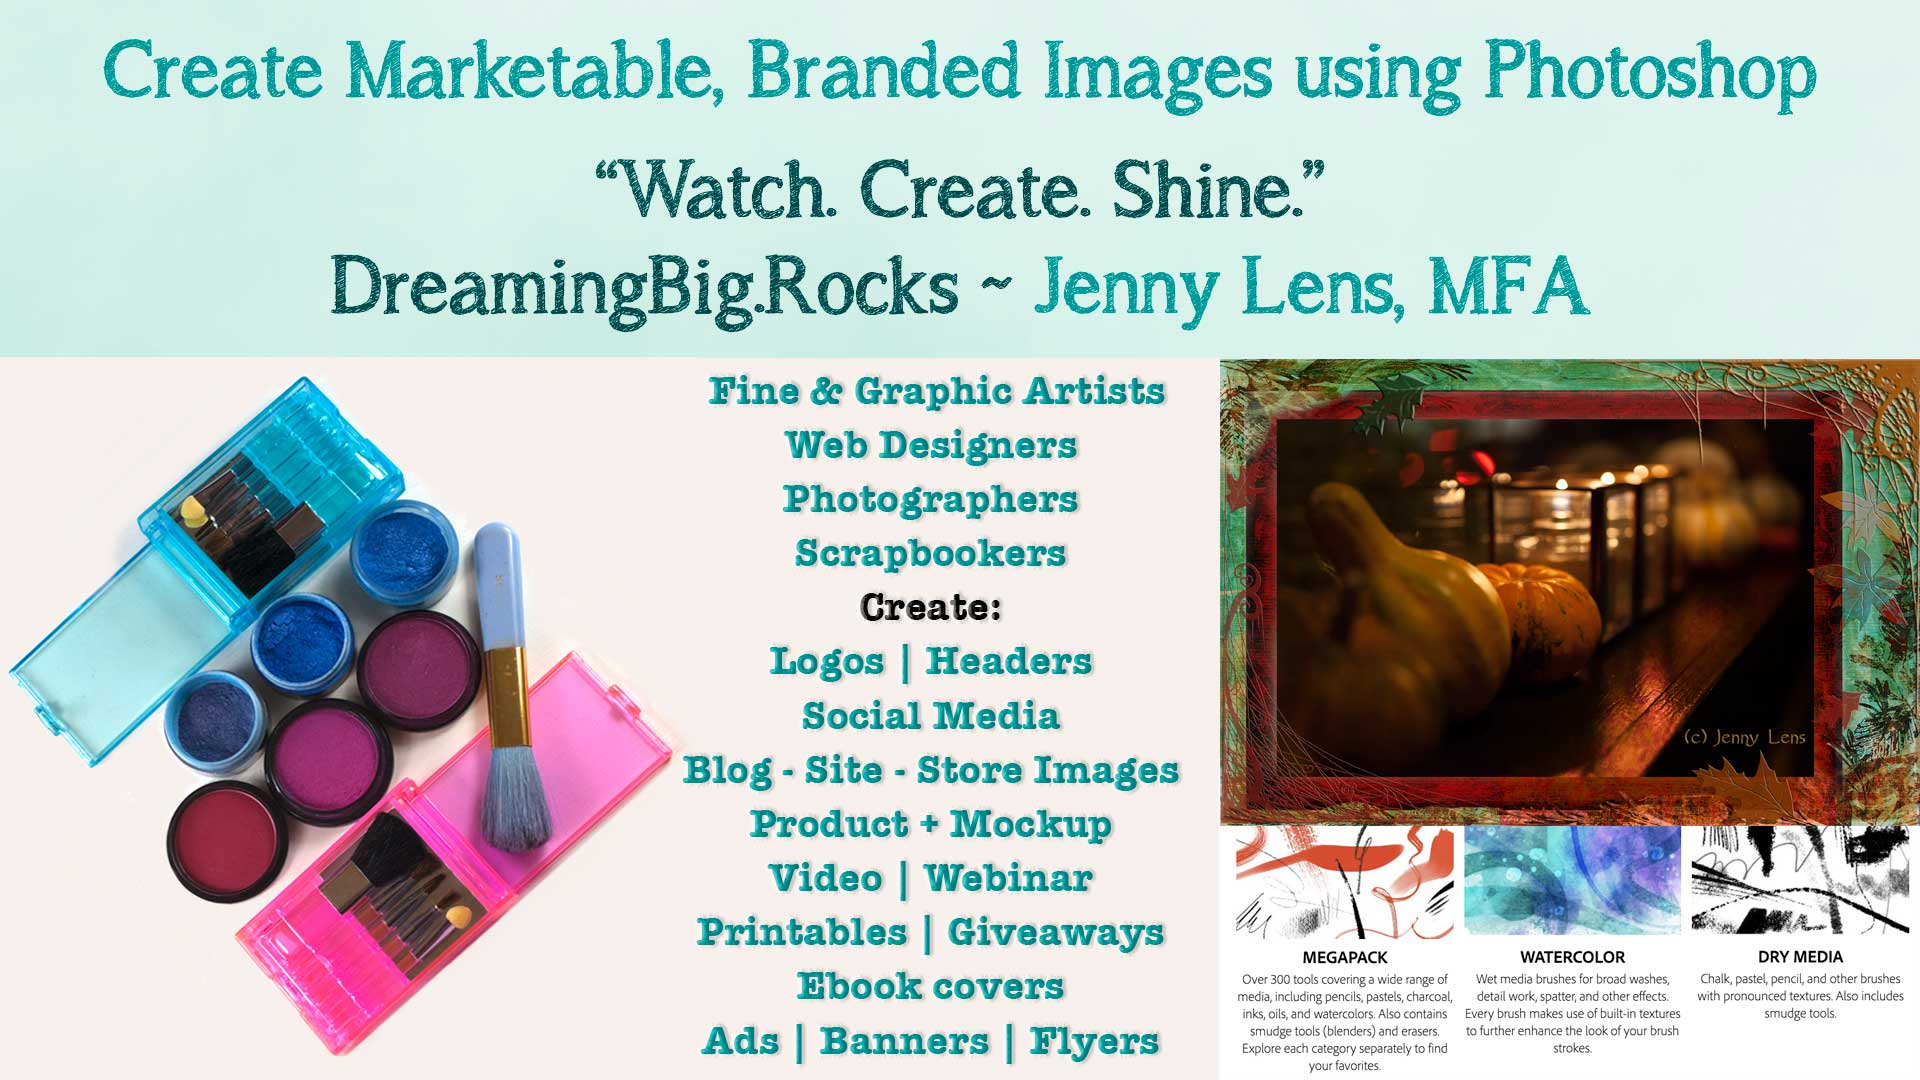 Create Marketable, Branded Images using Photoshop